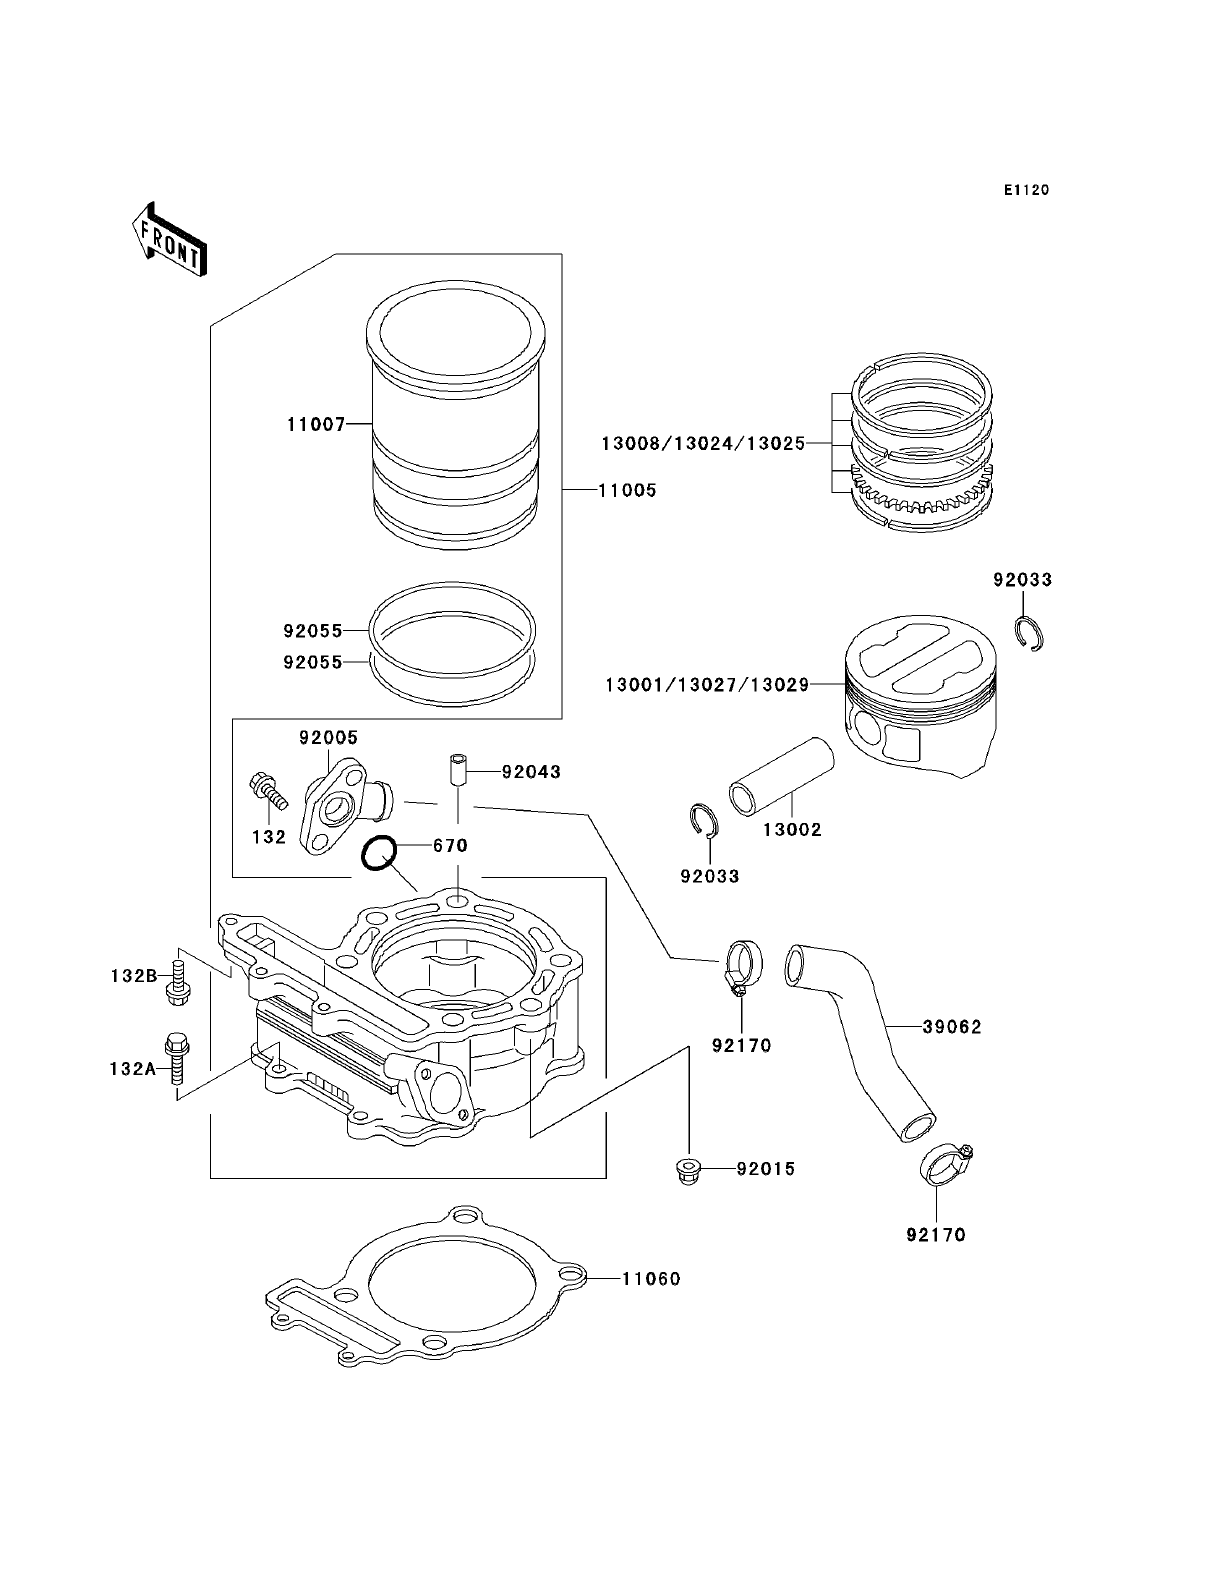 klr250 wiring diagram klr250 automotive wiring diagrams klr250 parts diagram cylinder pistons klr wiring diagram klr250 parts diagram cylinder pistons